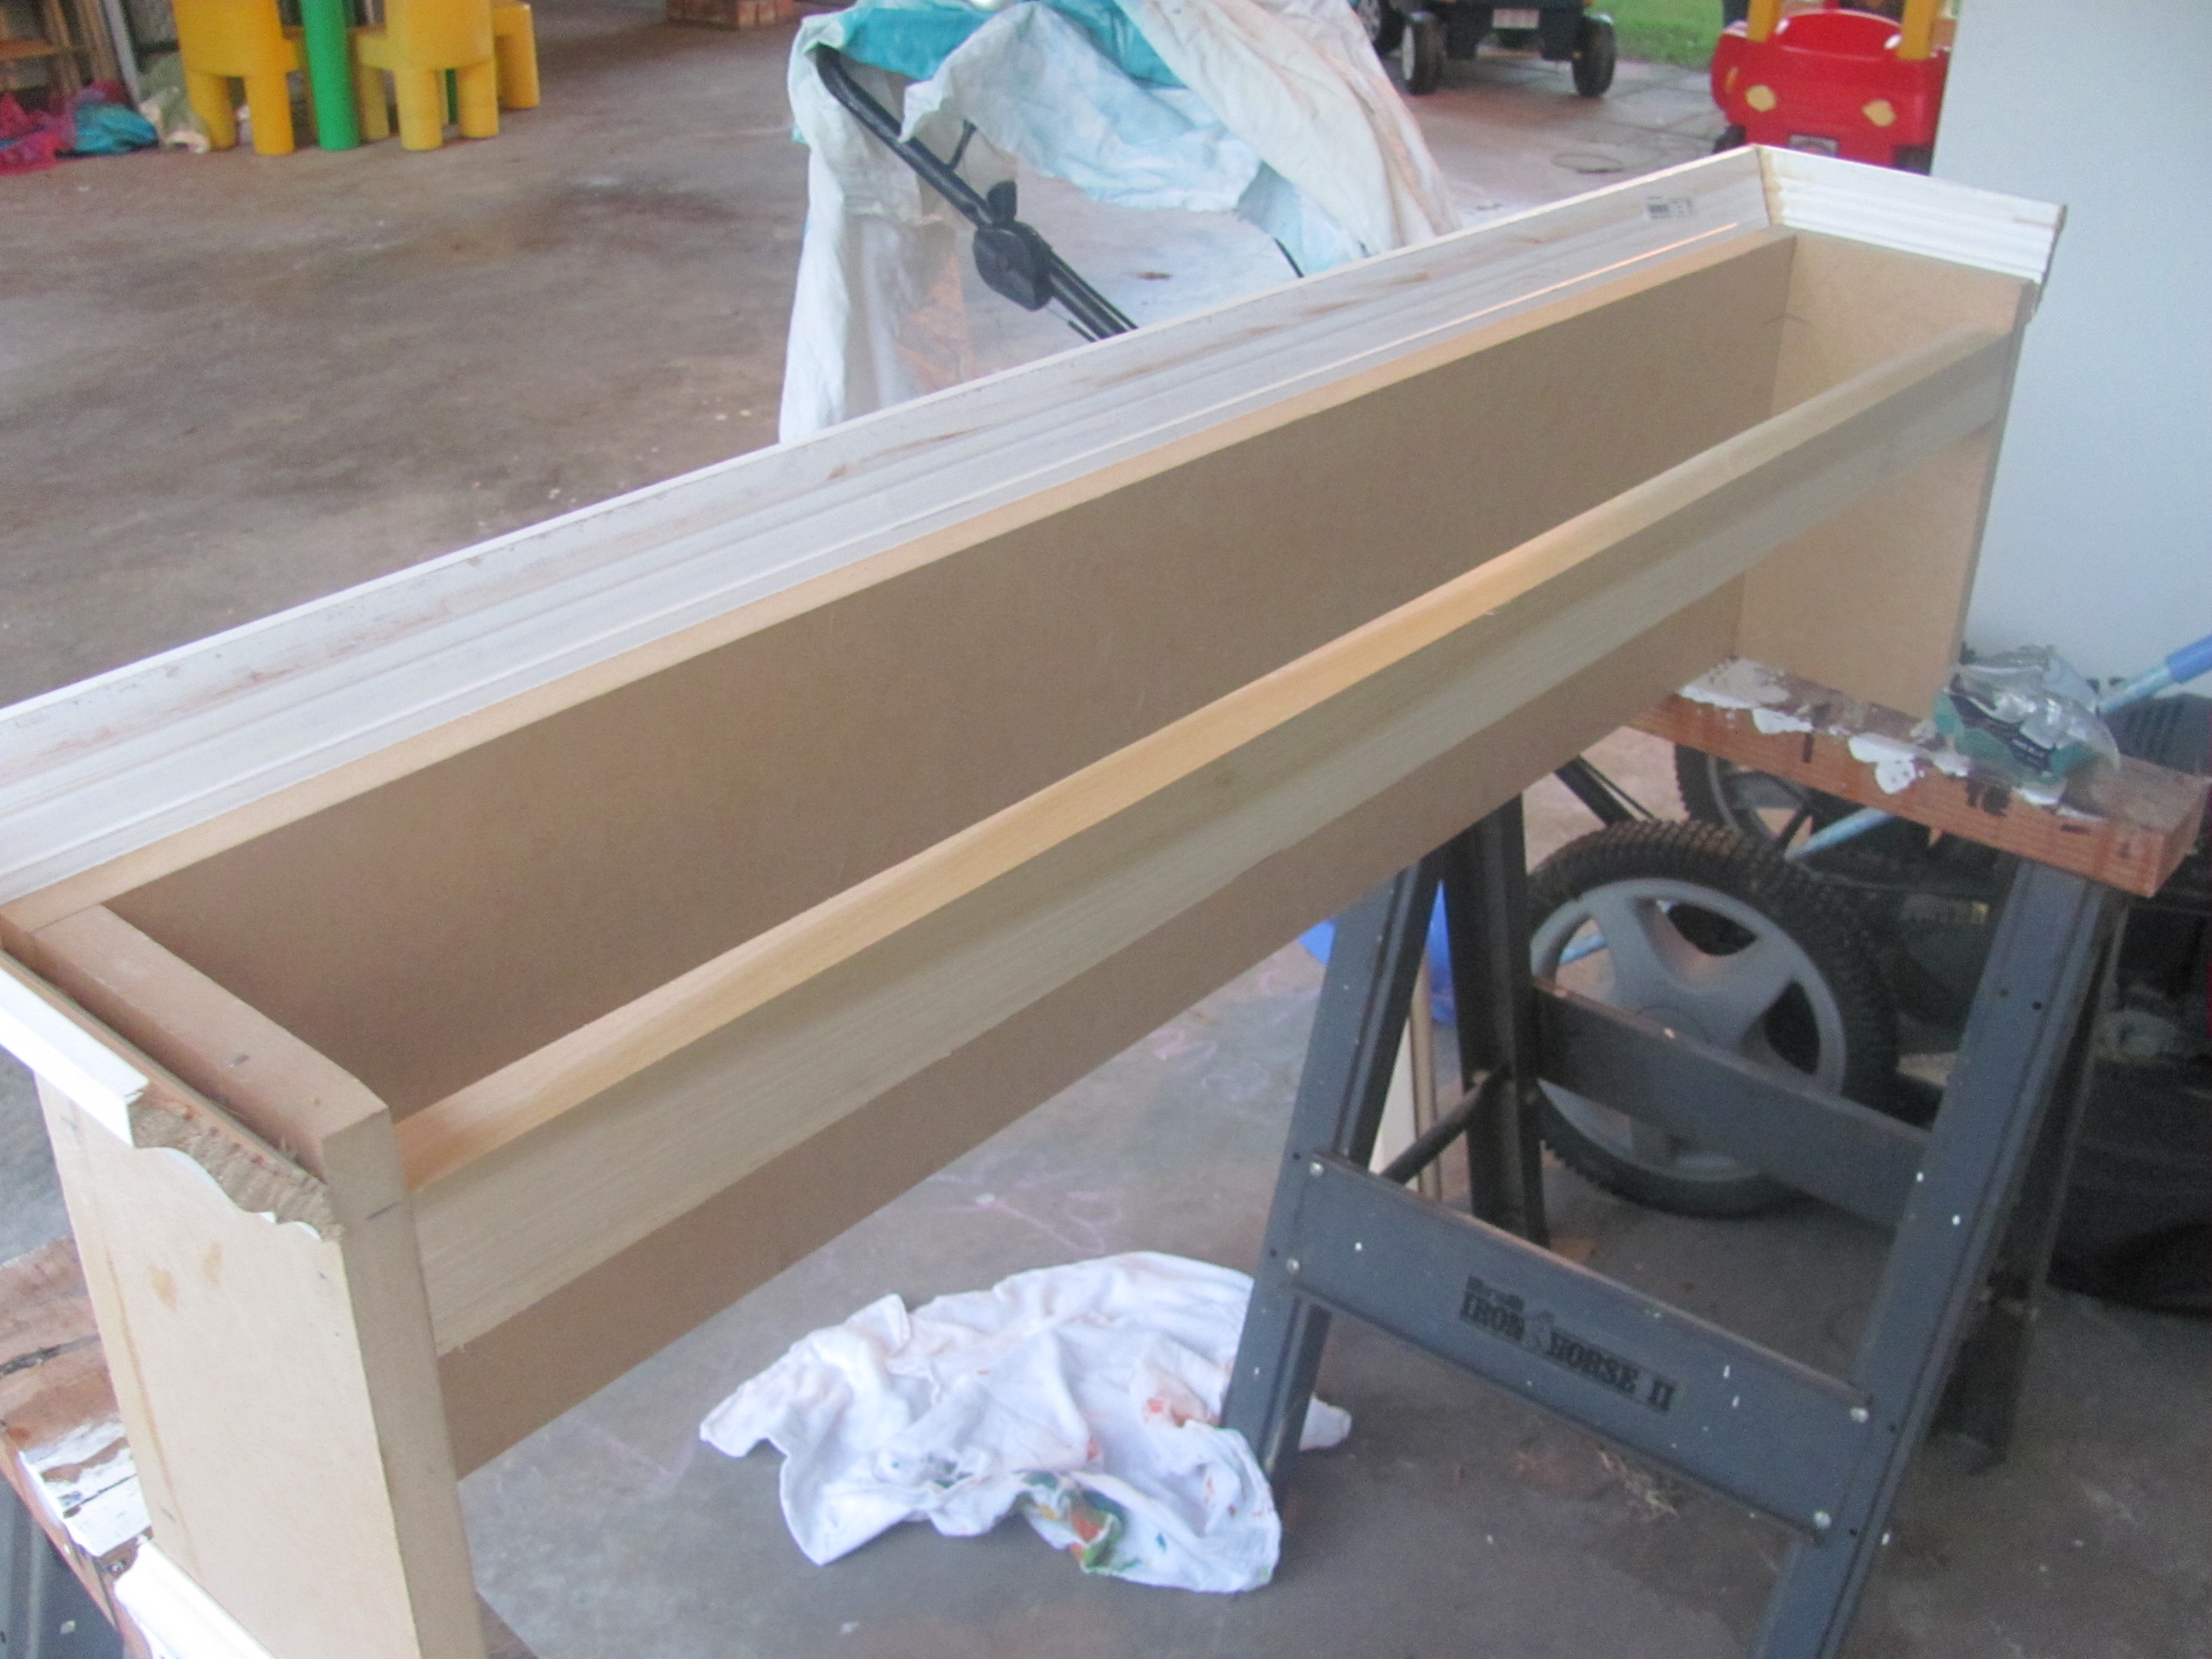 Woodworking Plans How To Build A Wood Valance Box Plans